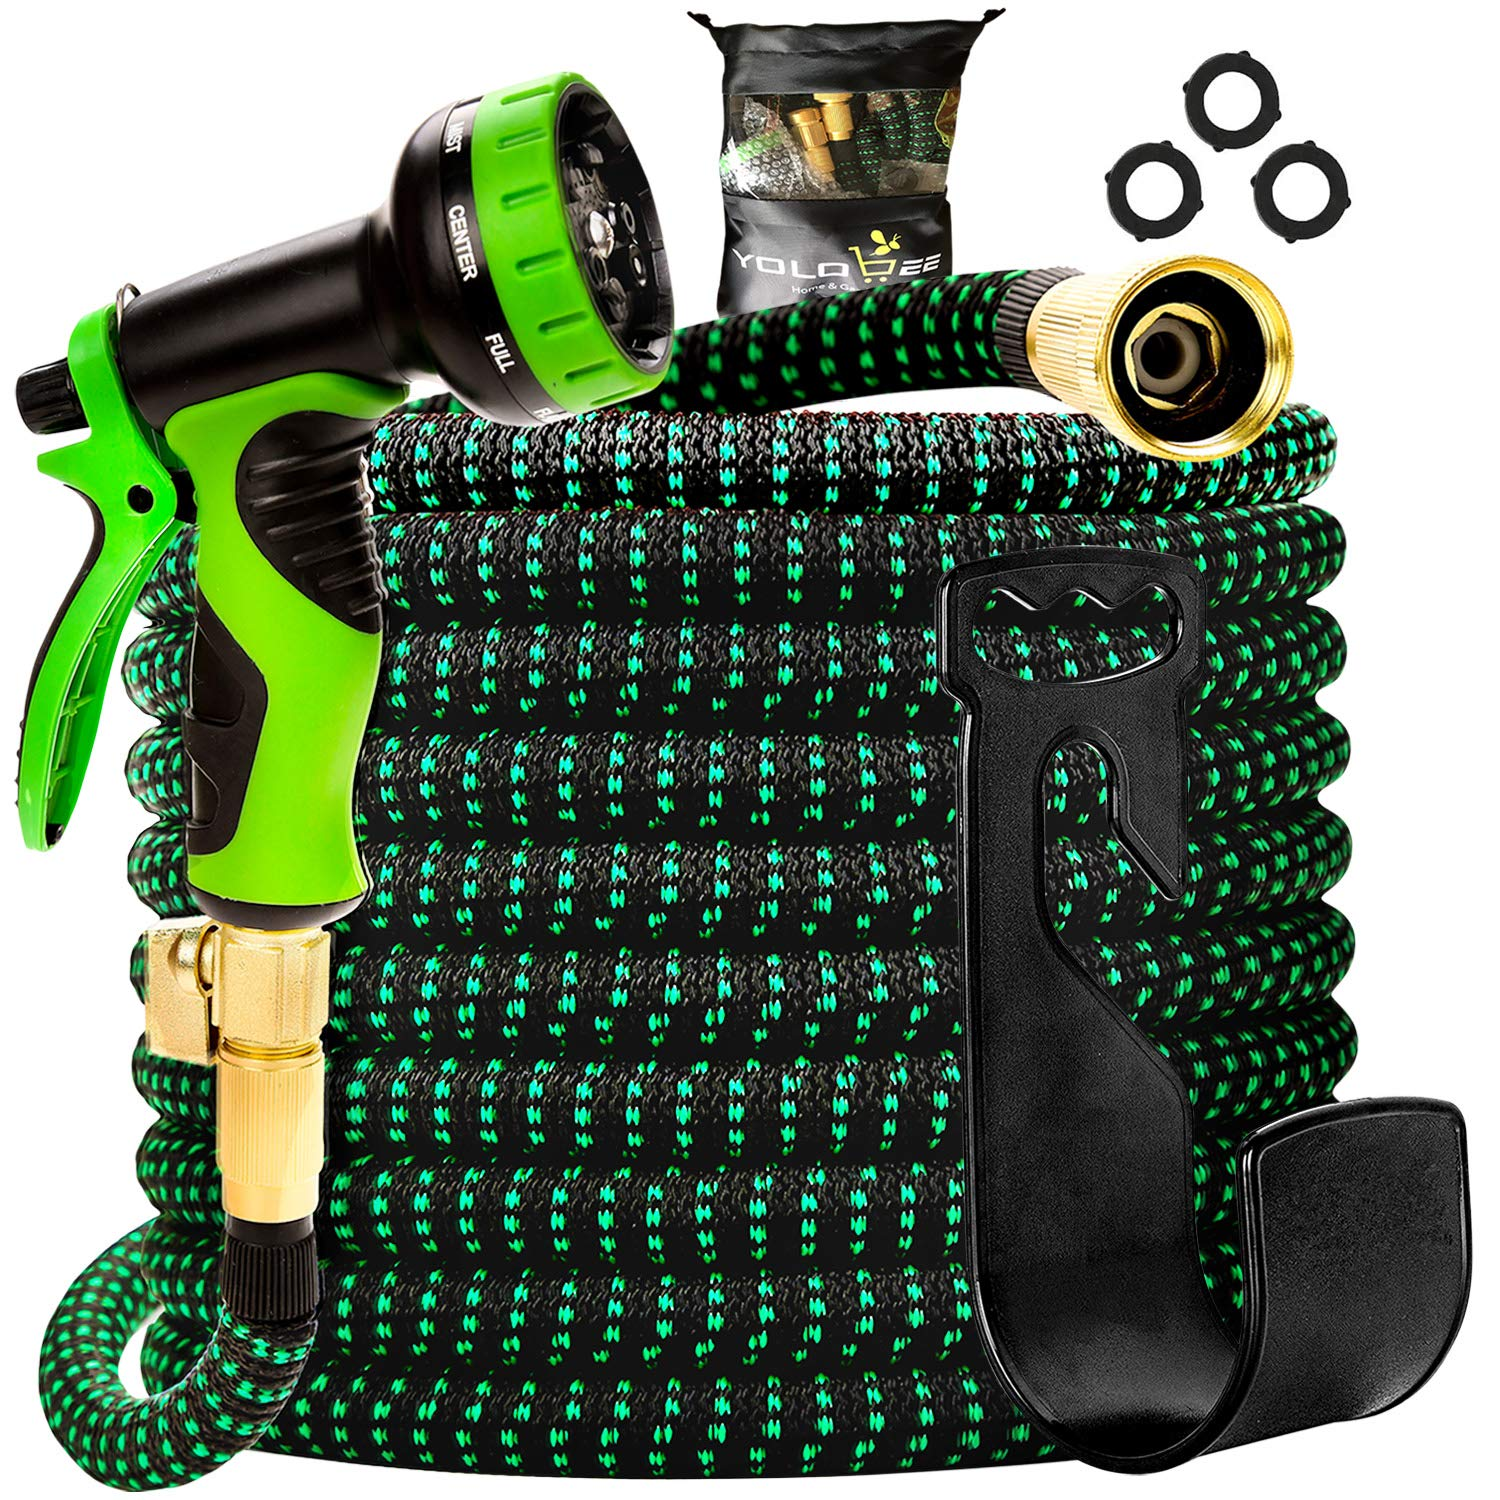 Yolobee Garden Hose 80 Feet, Expandable, Lightweight, High Density 3750D Outer Fabric, Durable Double Latex Core, Bundle with Spray Nozzle and Accessories (5 Items)